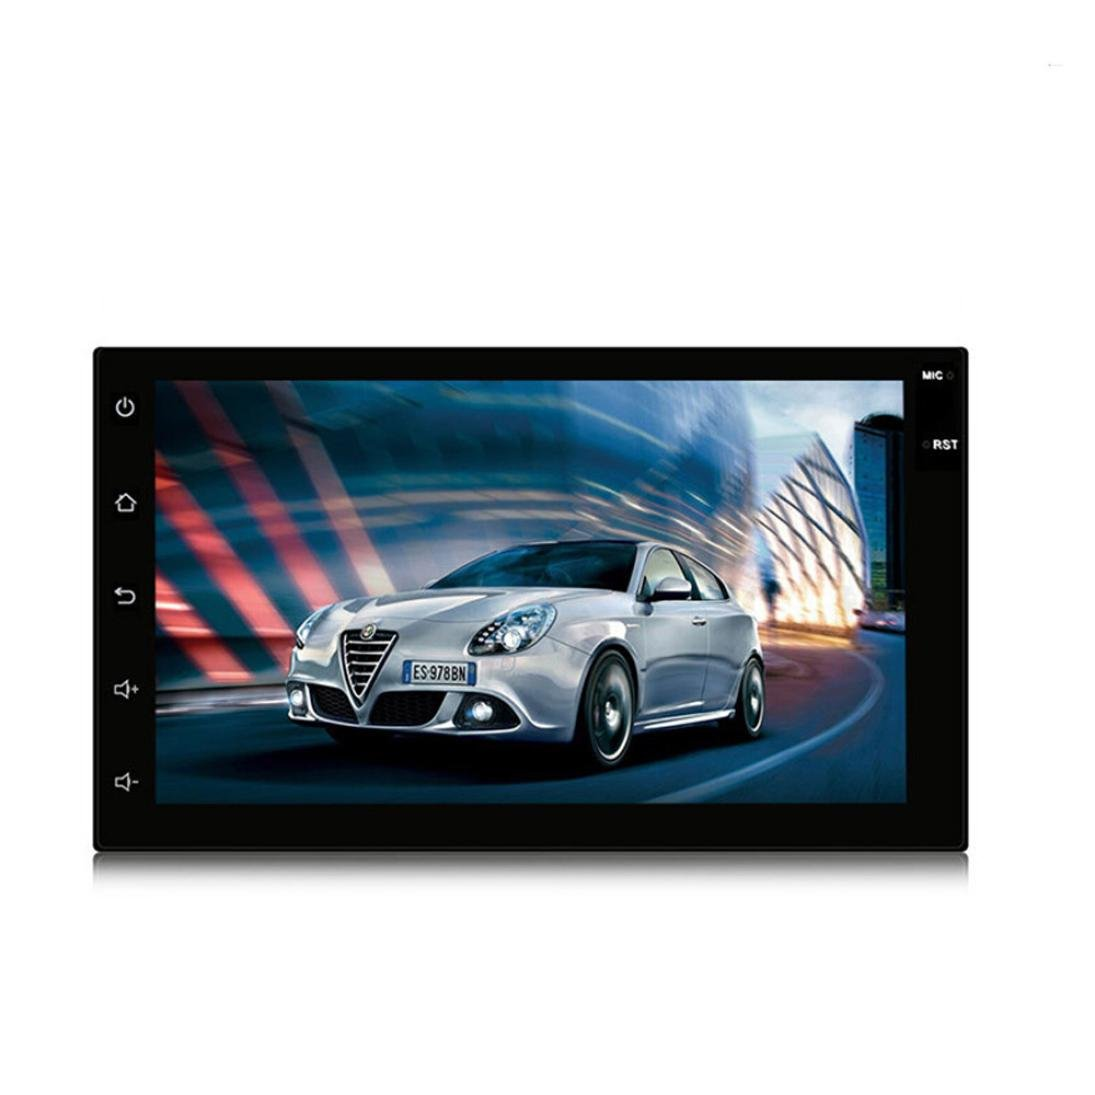 7088 7inch Double 2 Din 7inch HD Android Touchscreen In Dash GPS Car Stereo FM Radio MP5/MP3 Player Dreamyth Practical (Black)